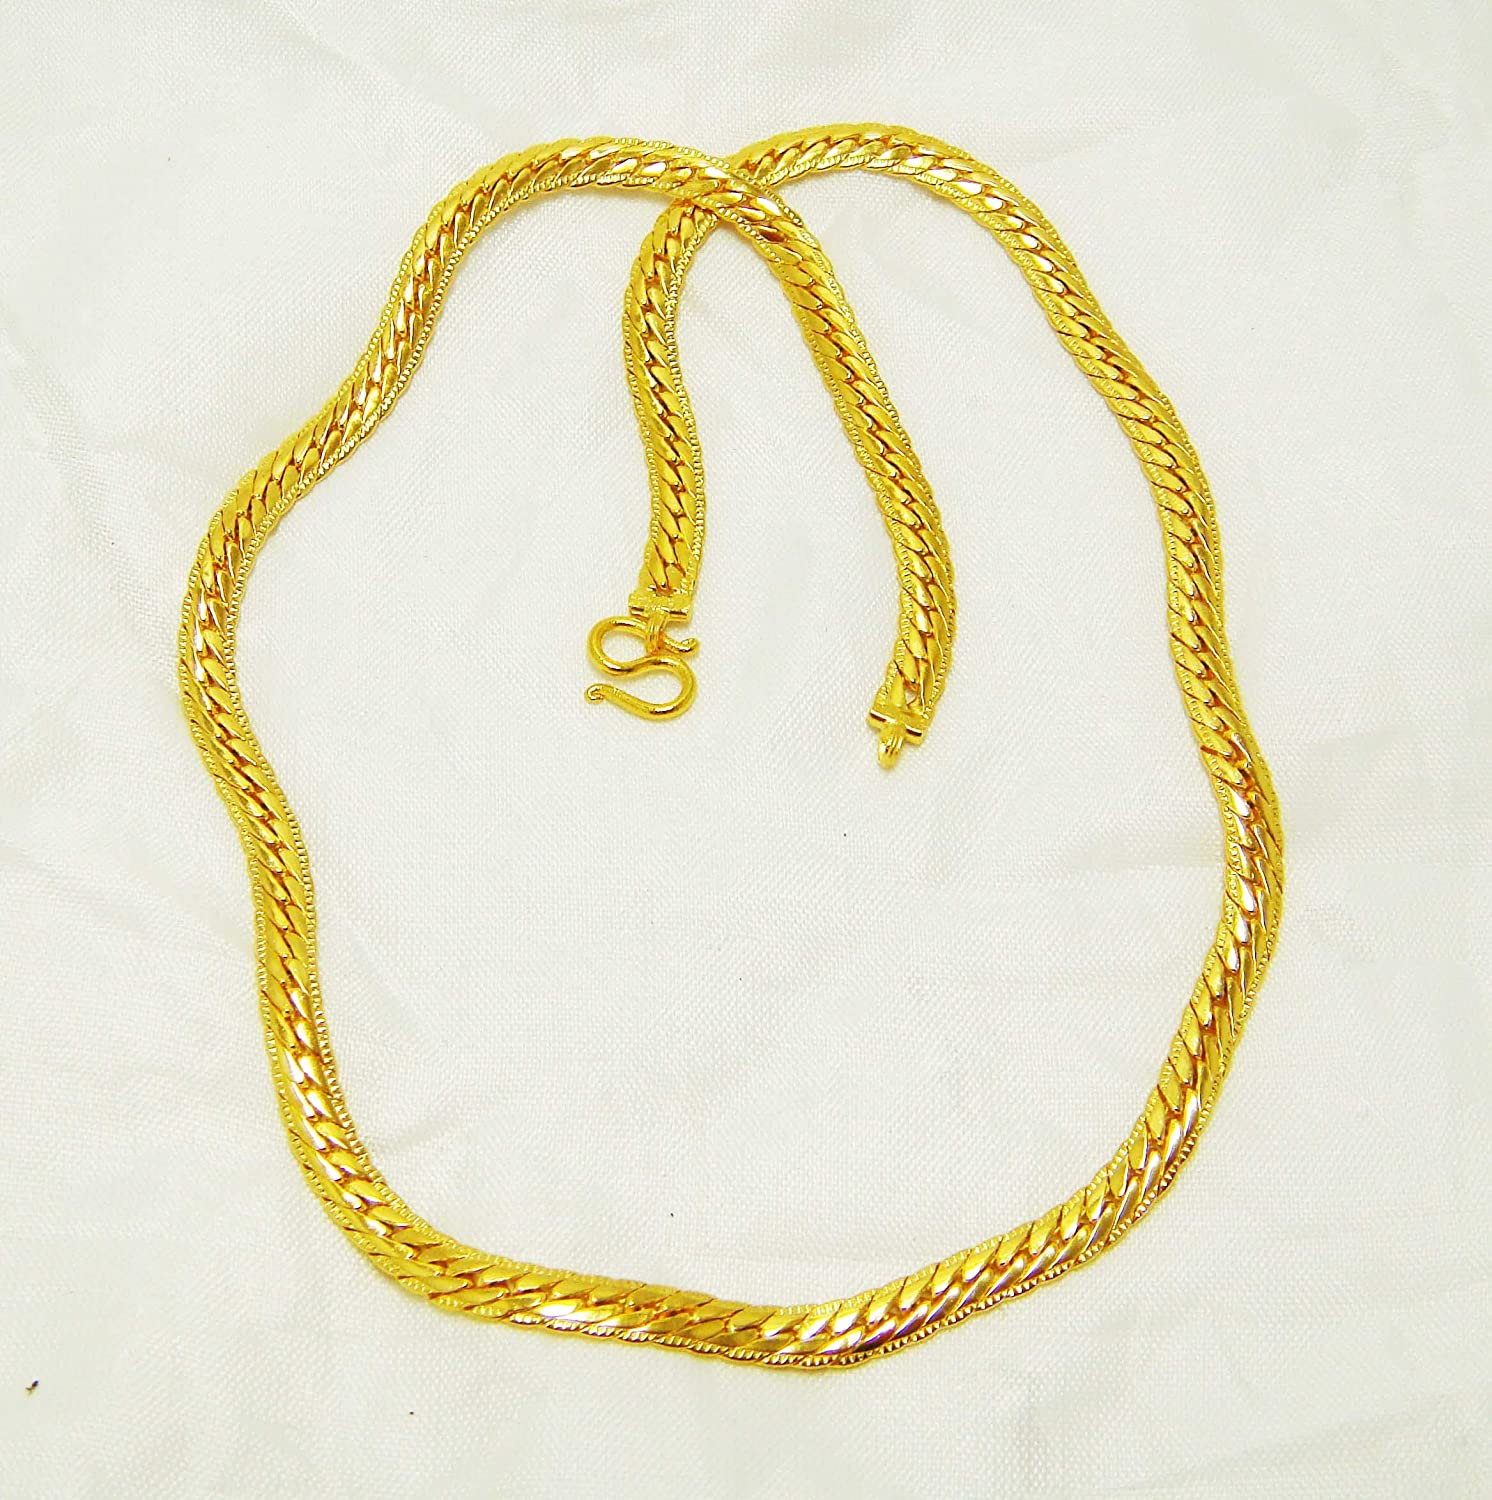 Chain Link 23k 24k Thai Baht Yellow Gold Plated Filled Snake Necklace Jewelry Women 24 inch 34 Grams 7 MM Mens